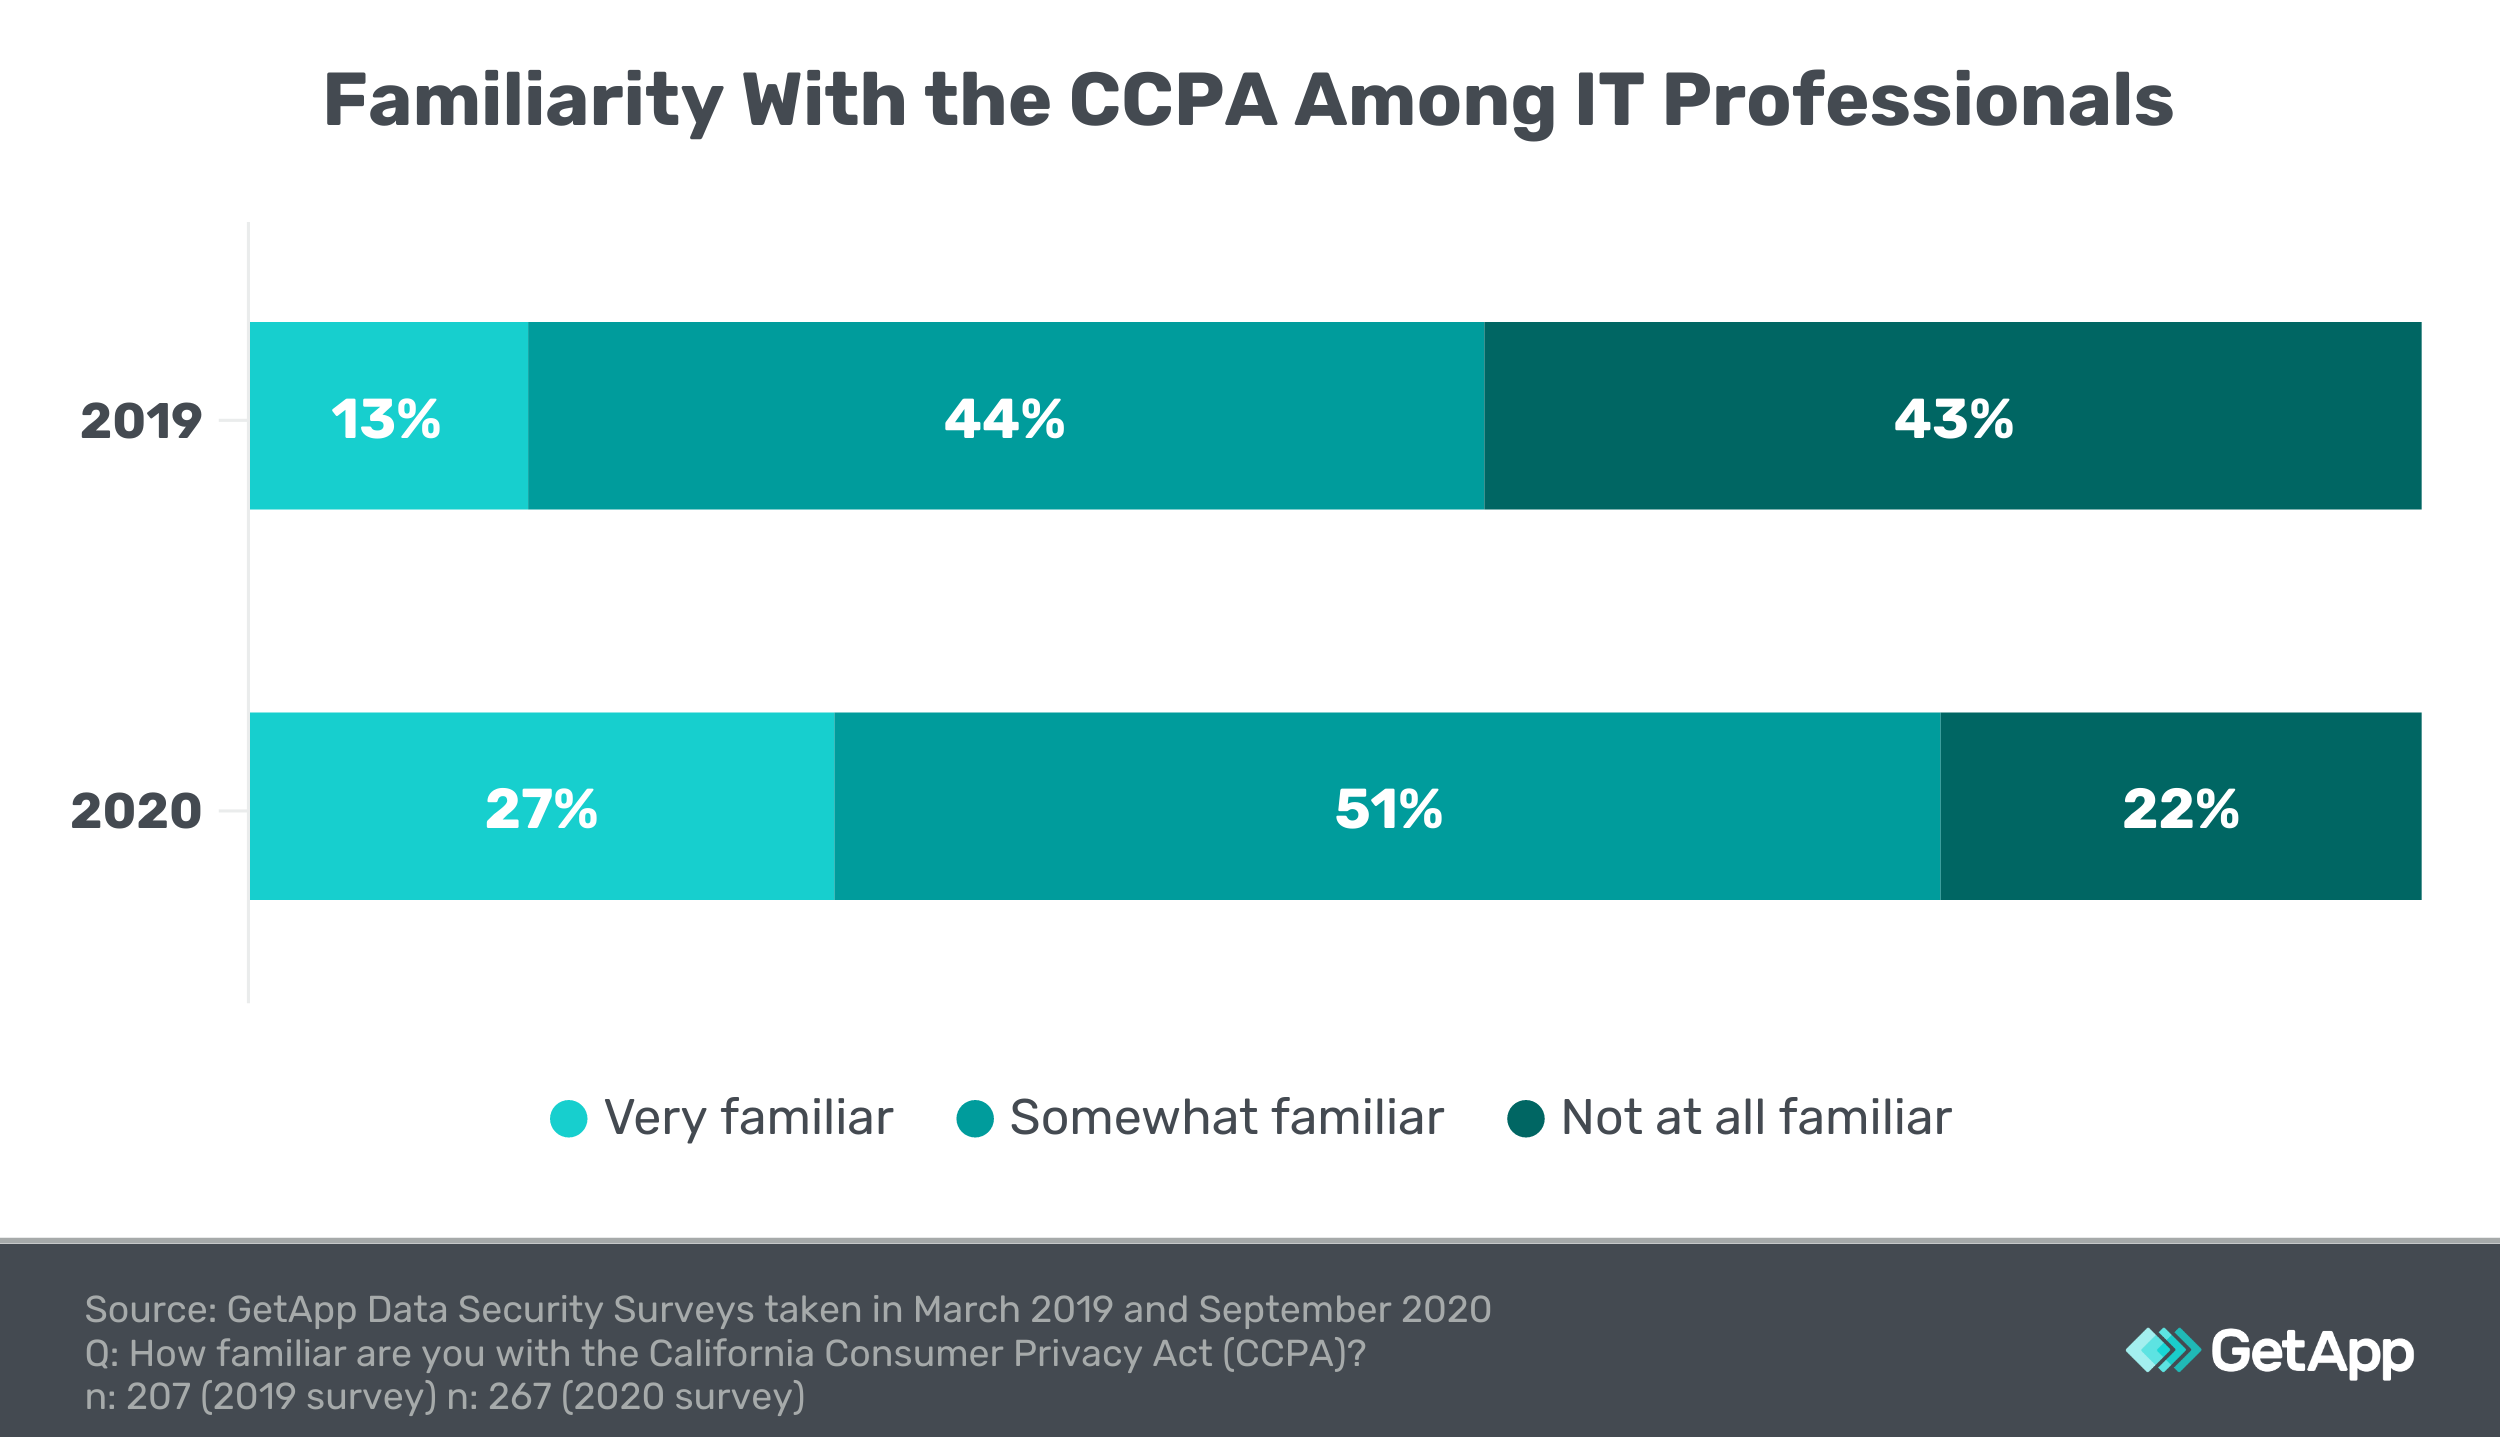 Graphic showing that IT professionals have become more familiar with the CCPA over the last year.